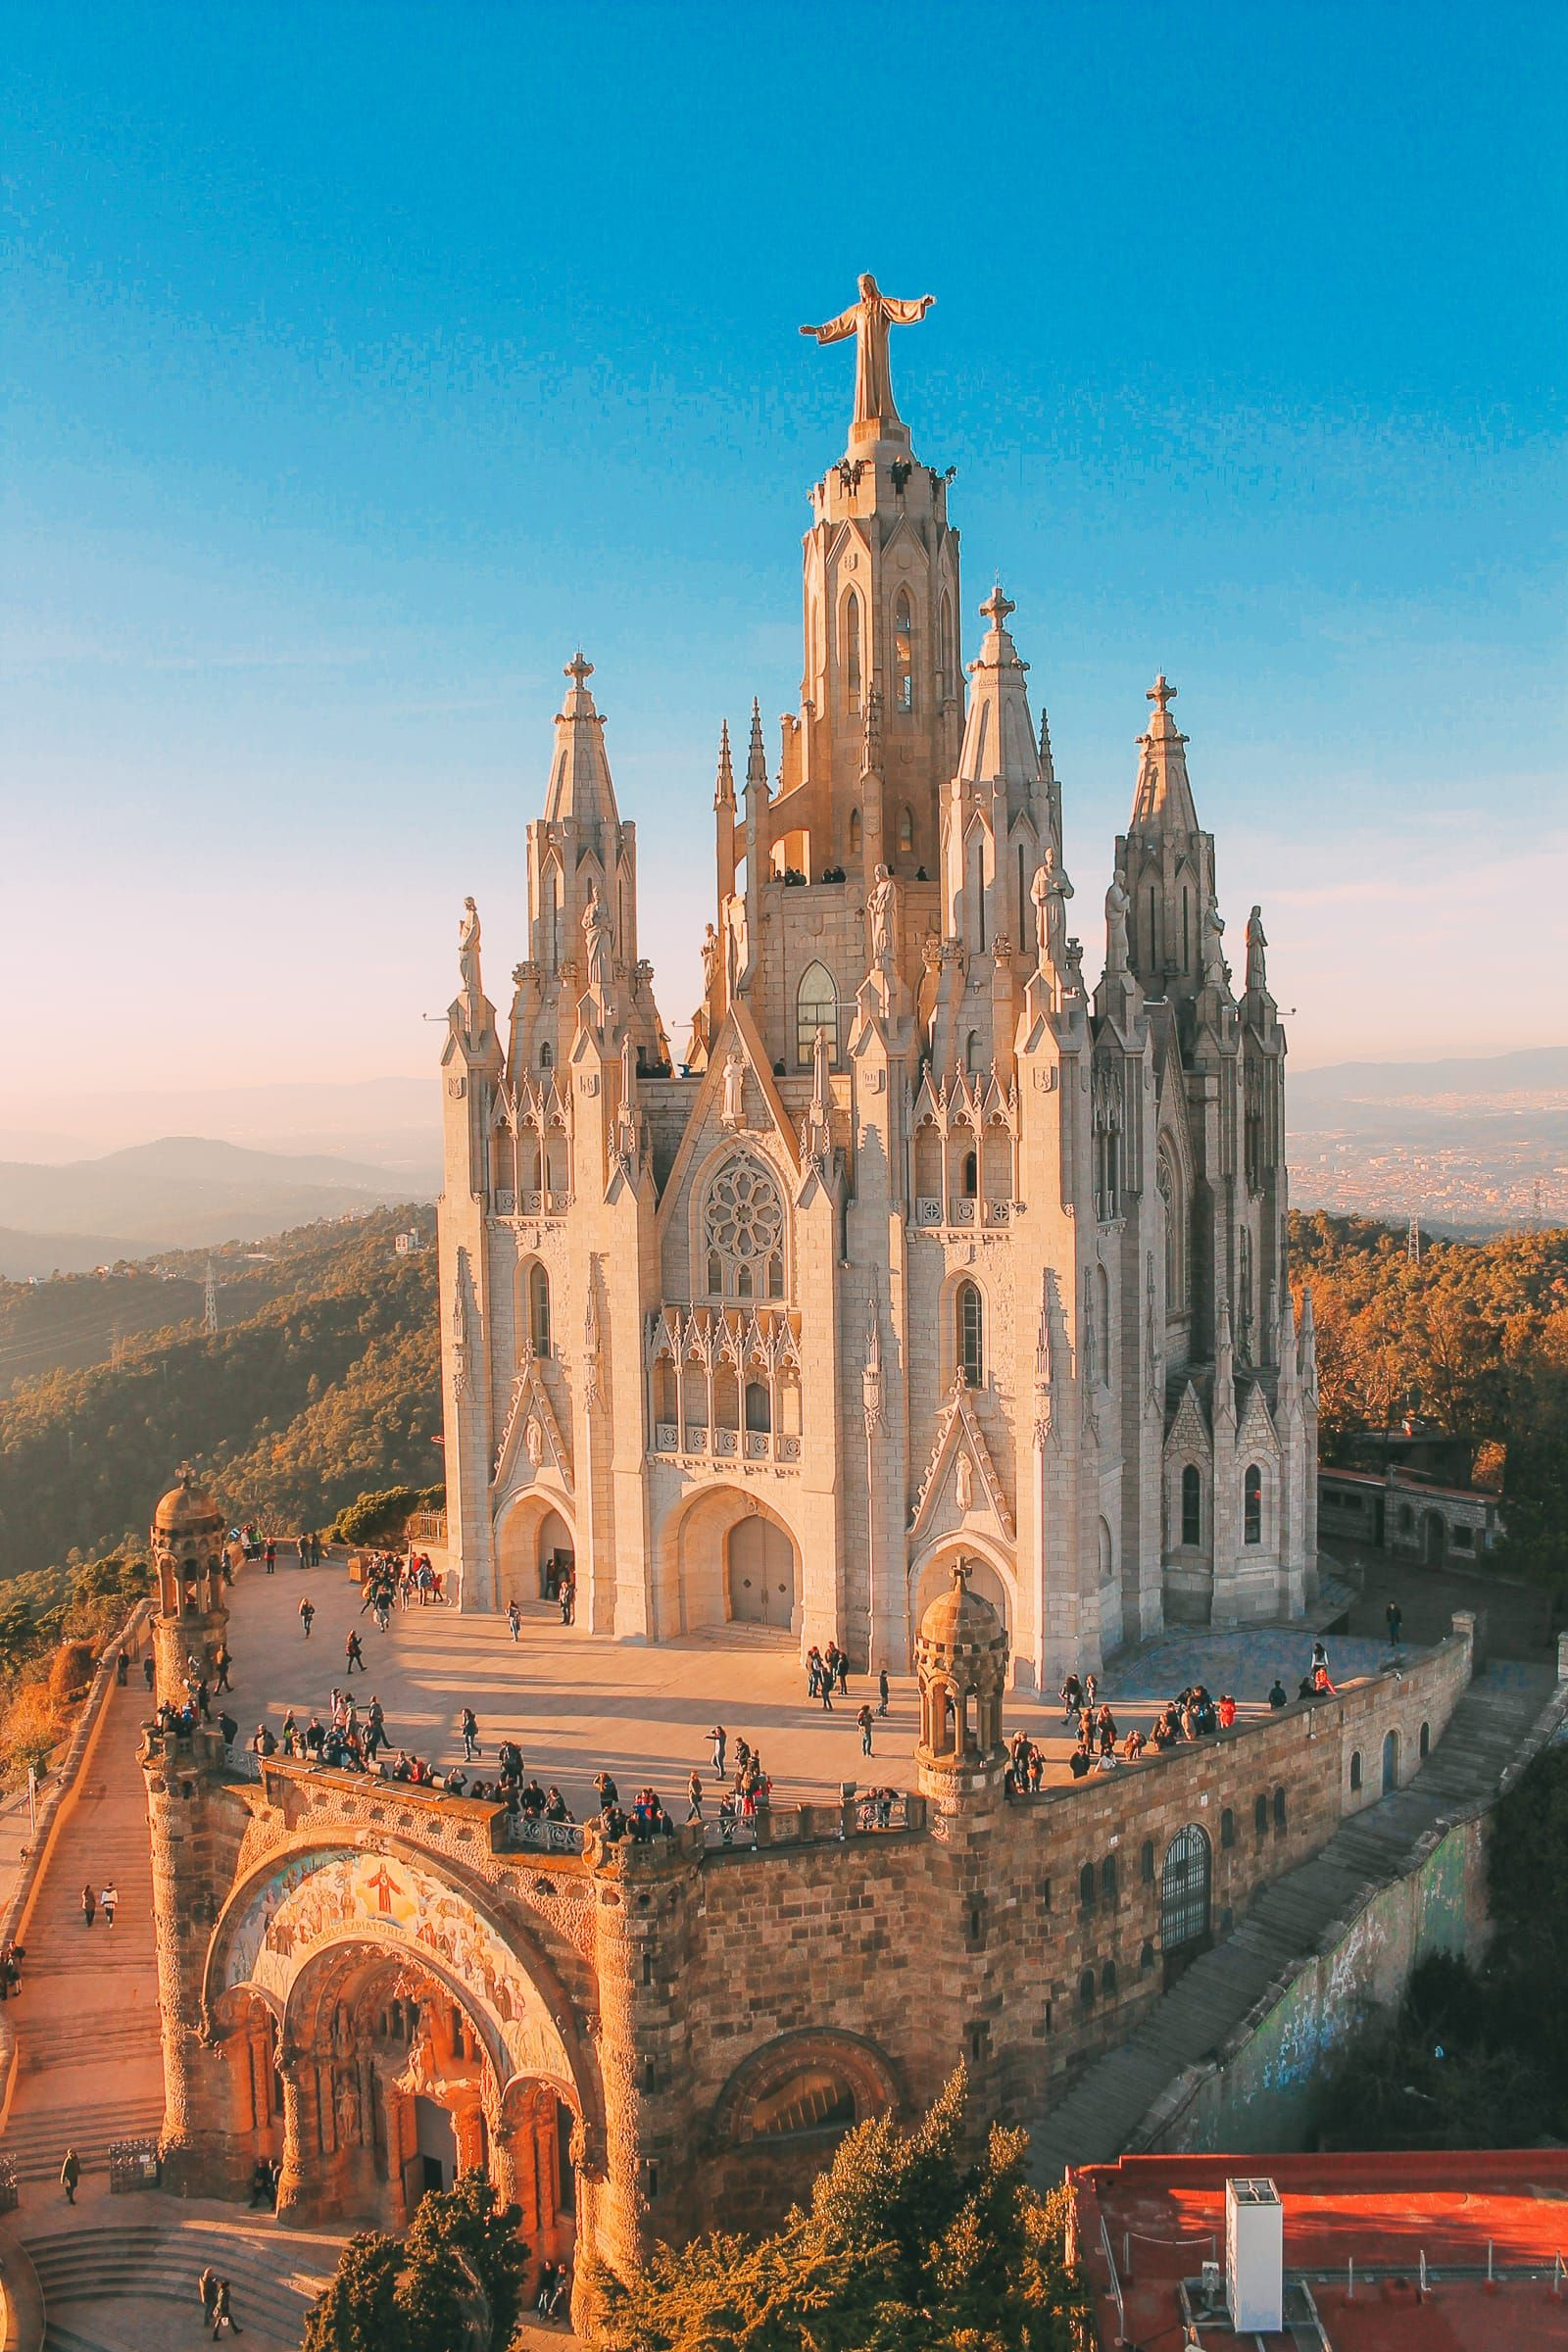 September 10 - September 17, 2020 - 7 Nights / 8 DaysGroup Size: 16*12 spots left*Yes, we are heading to Spain, girl! Pack your bags and get ready for your Spanish adventure as we explore the streets of Barcelona and chill out in Ibiza overlooking the Mediterranean. Spain is filled with culture, great food, music, and sunshine. The Girls Trip itinerary is a 7-night experience to fulfill all of your Spanish dreams.Join us as we take you through an amazing tour of Barcelona and Ibiza to explore magnificent sights and experiences in European-style with 17 other ladies.Here's a little taste of what you can expect:*Boutique Style Accommodations**An Experience Packed Itinerary **4 nights in Barcelona + 3 nights in the World Famous Island of Ibiza**Local and Specialty Dining*